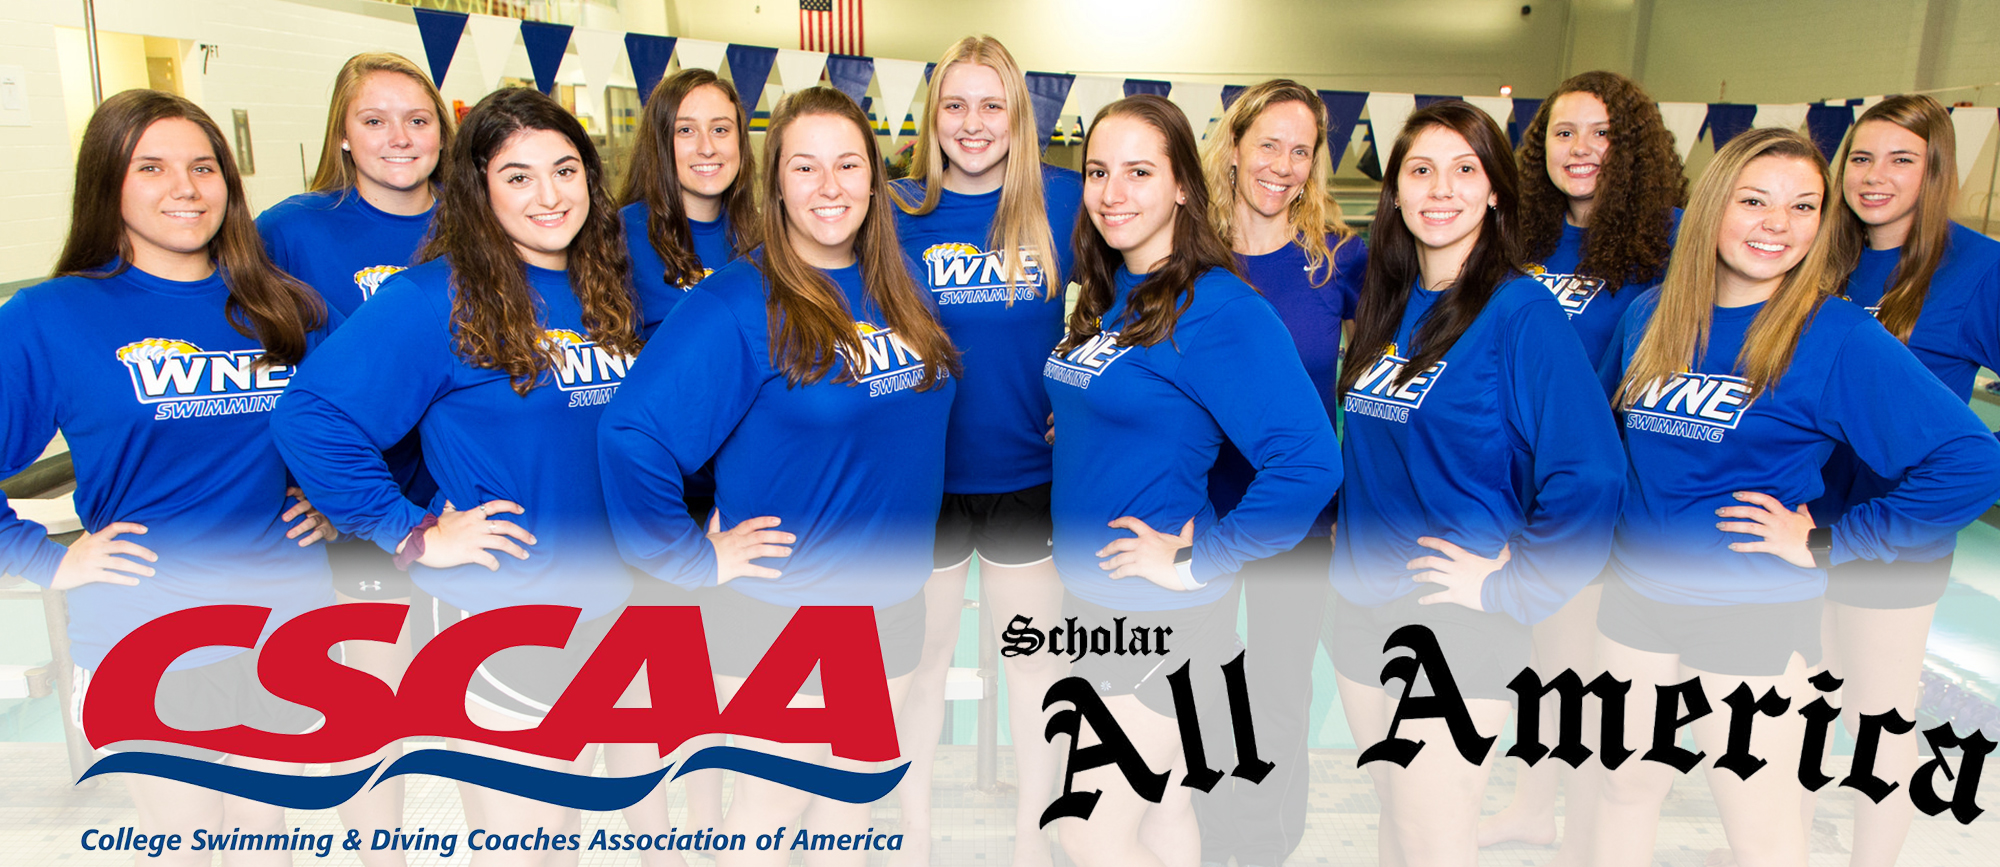 WNE Swimming Named CSCAA Scholar All-America Team for Fall Semester